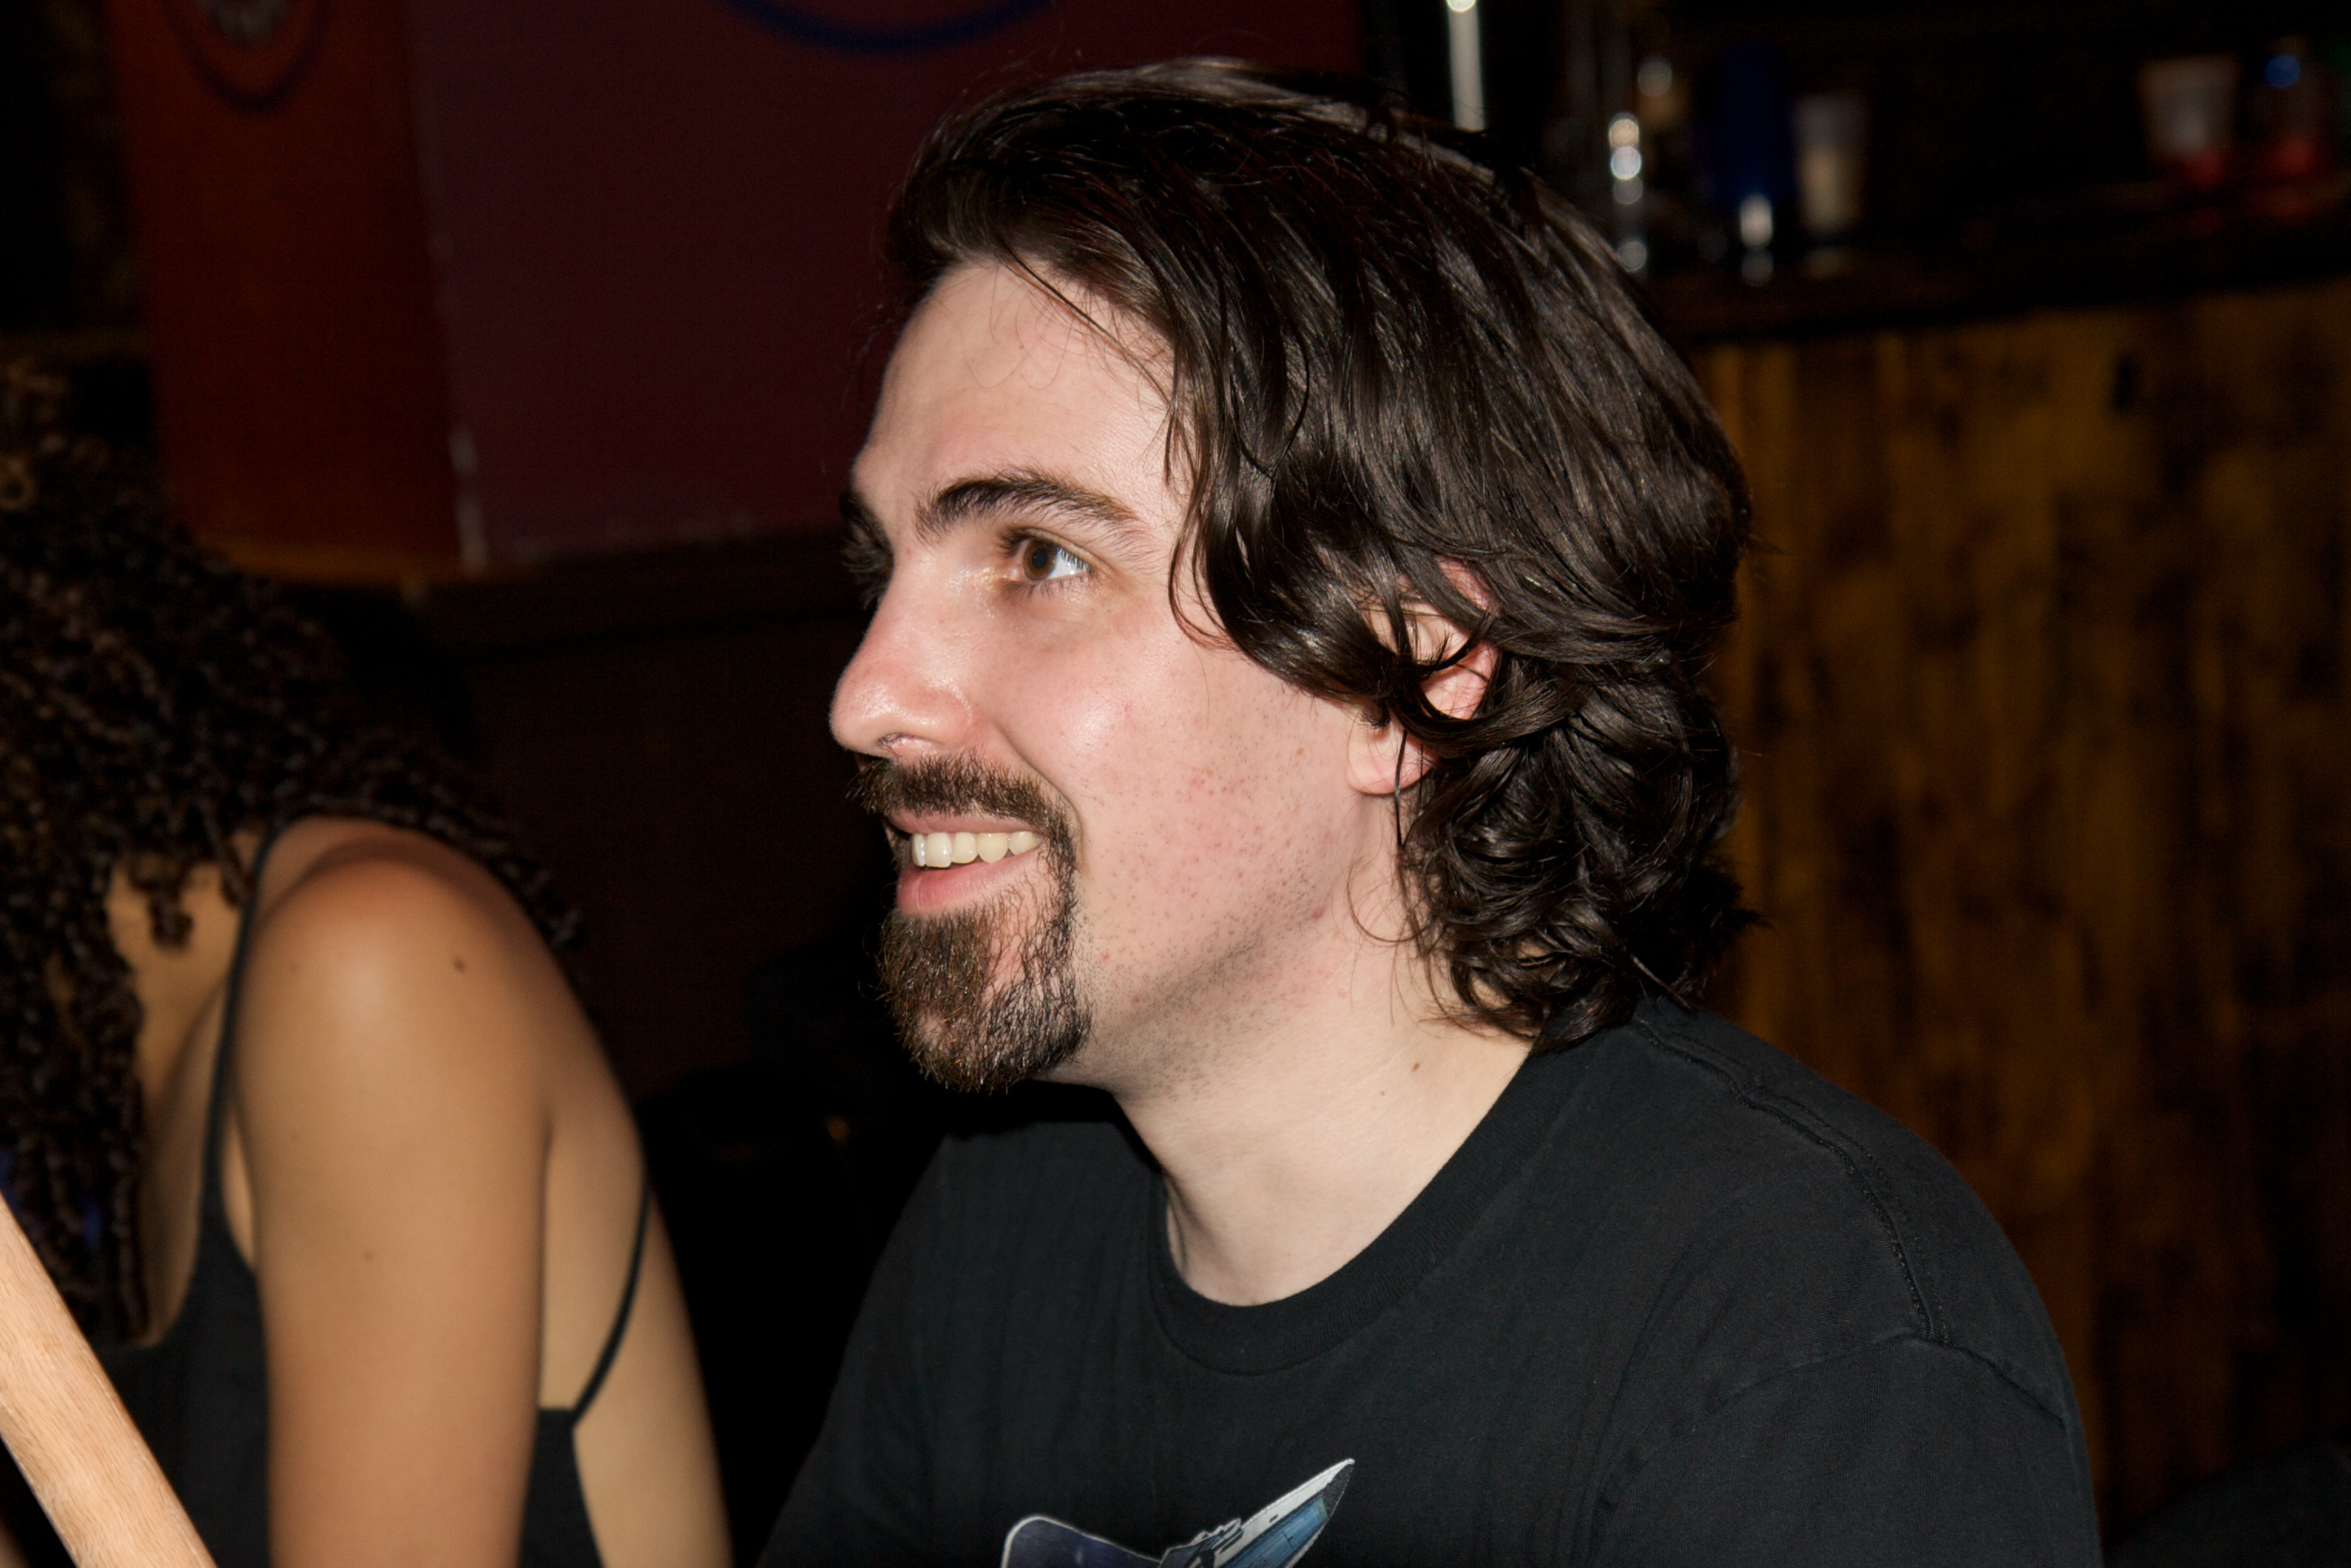 bear mccreary in memoriam